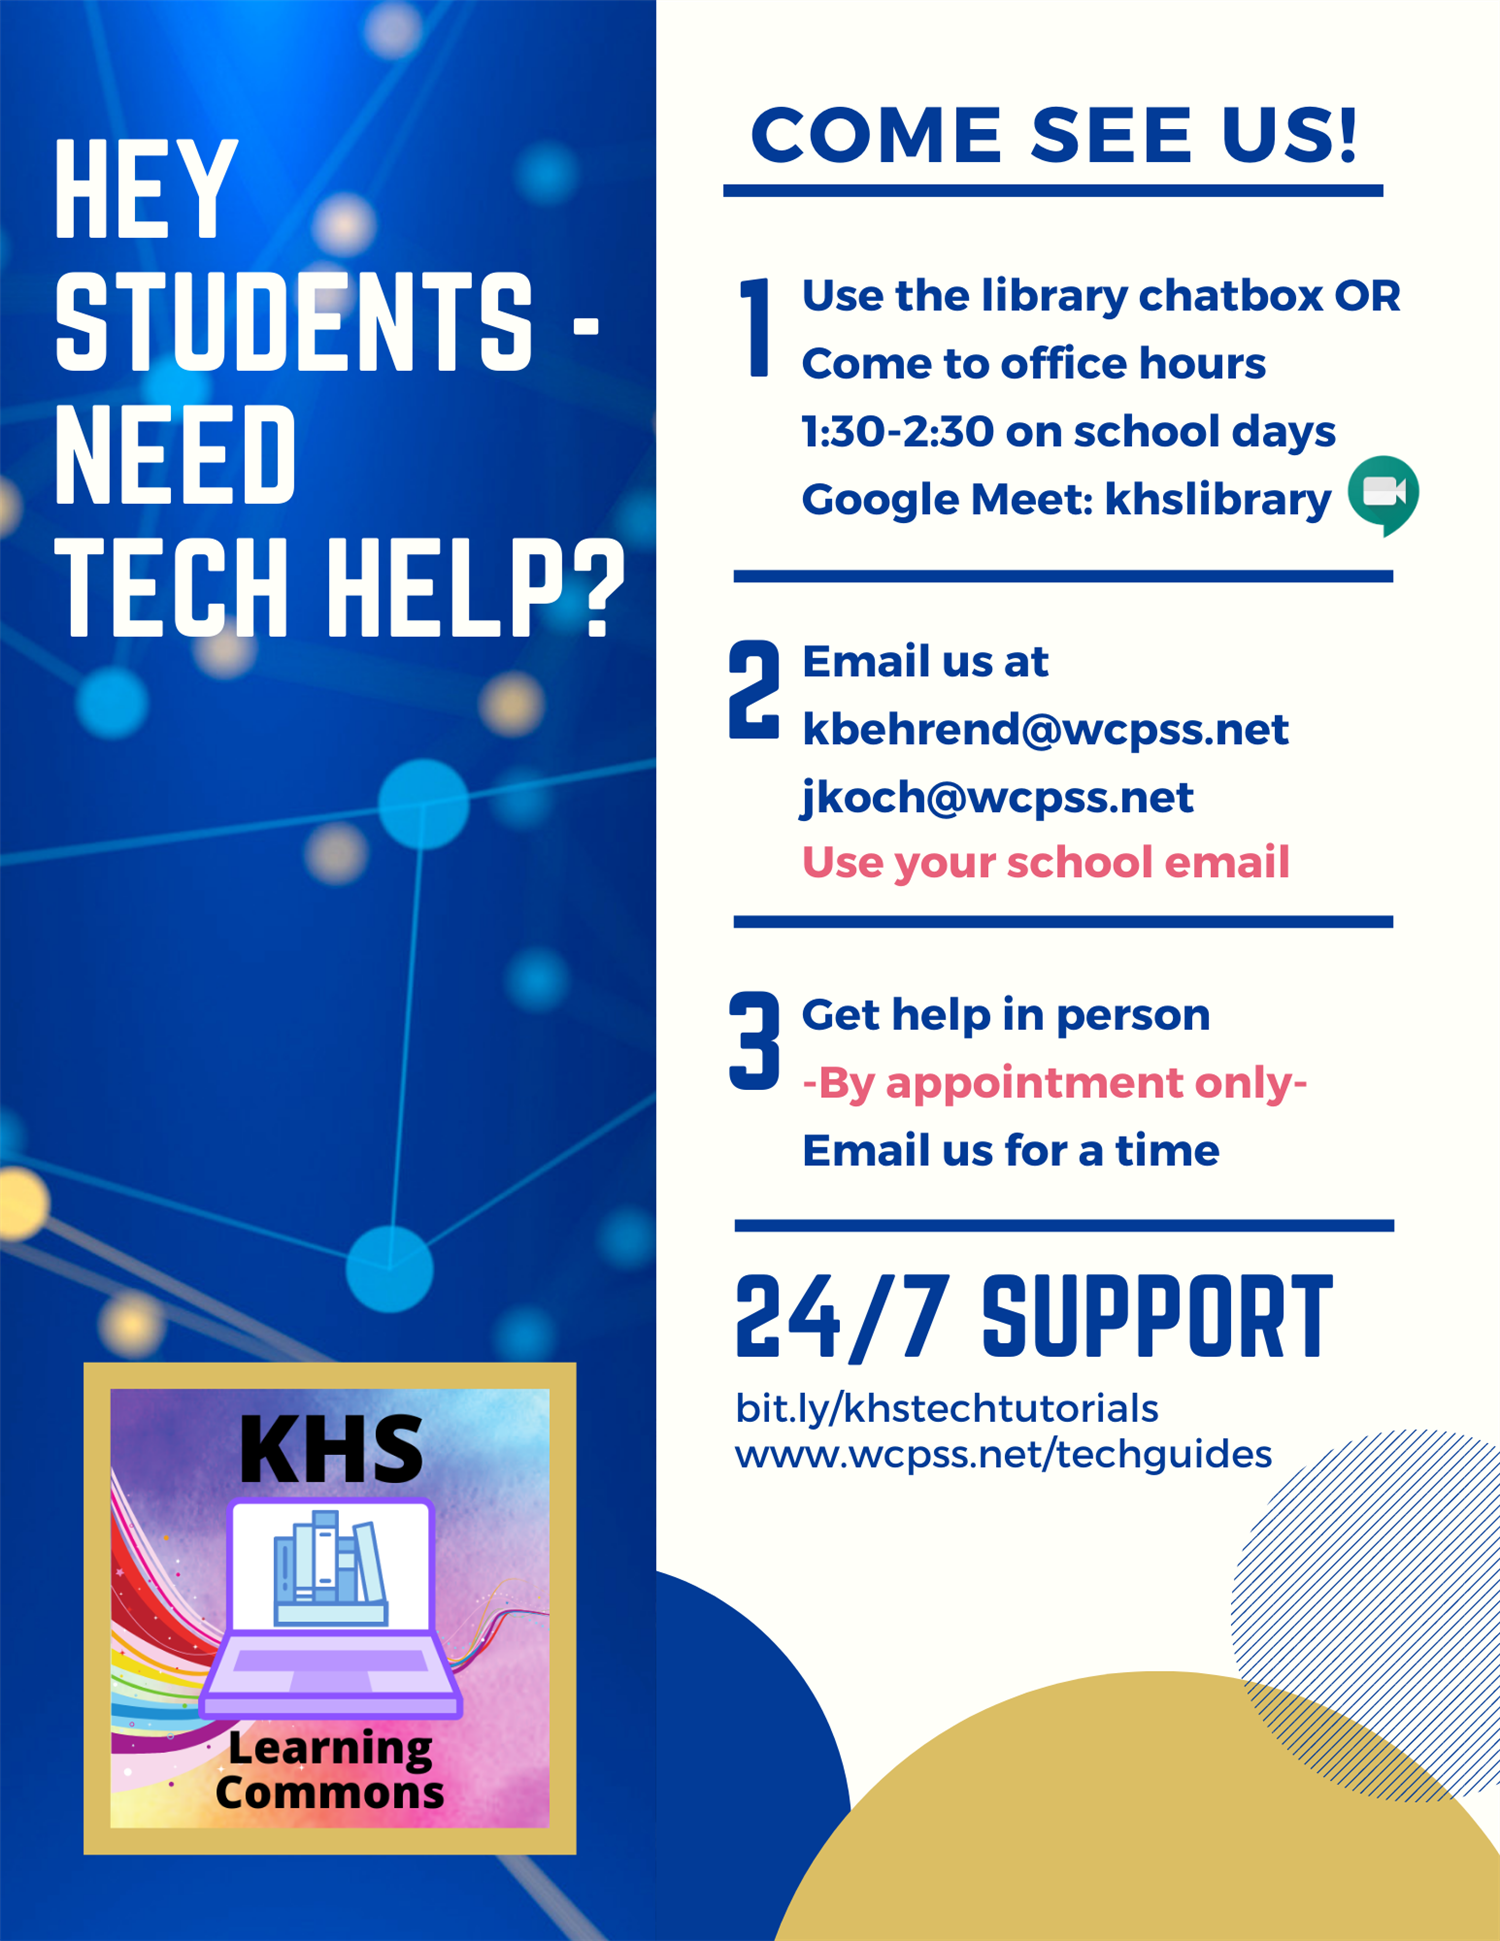 Email kbehrend@wcpss.net or jkoch@wcpss.net for technology help